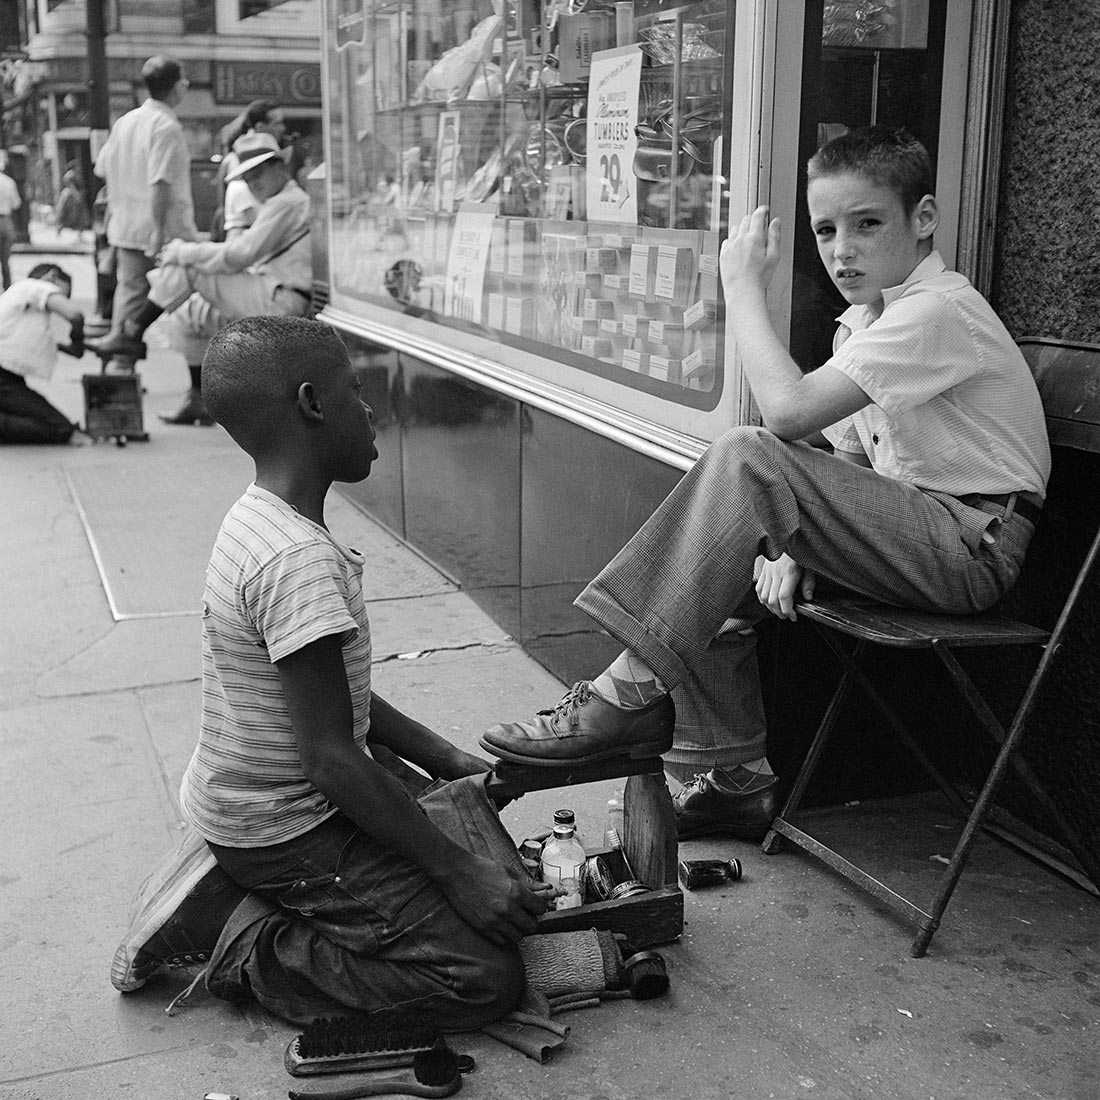 New York, NY. June 1954. Photo by Vivian Maier, courtesy the Maloof Collection:Howard Greenberg Galleries